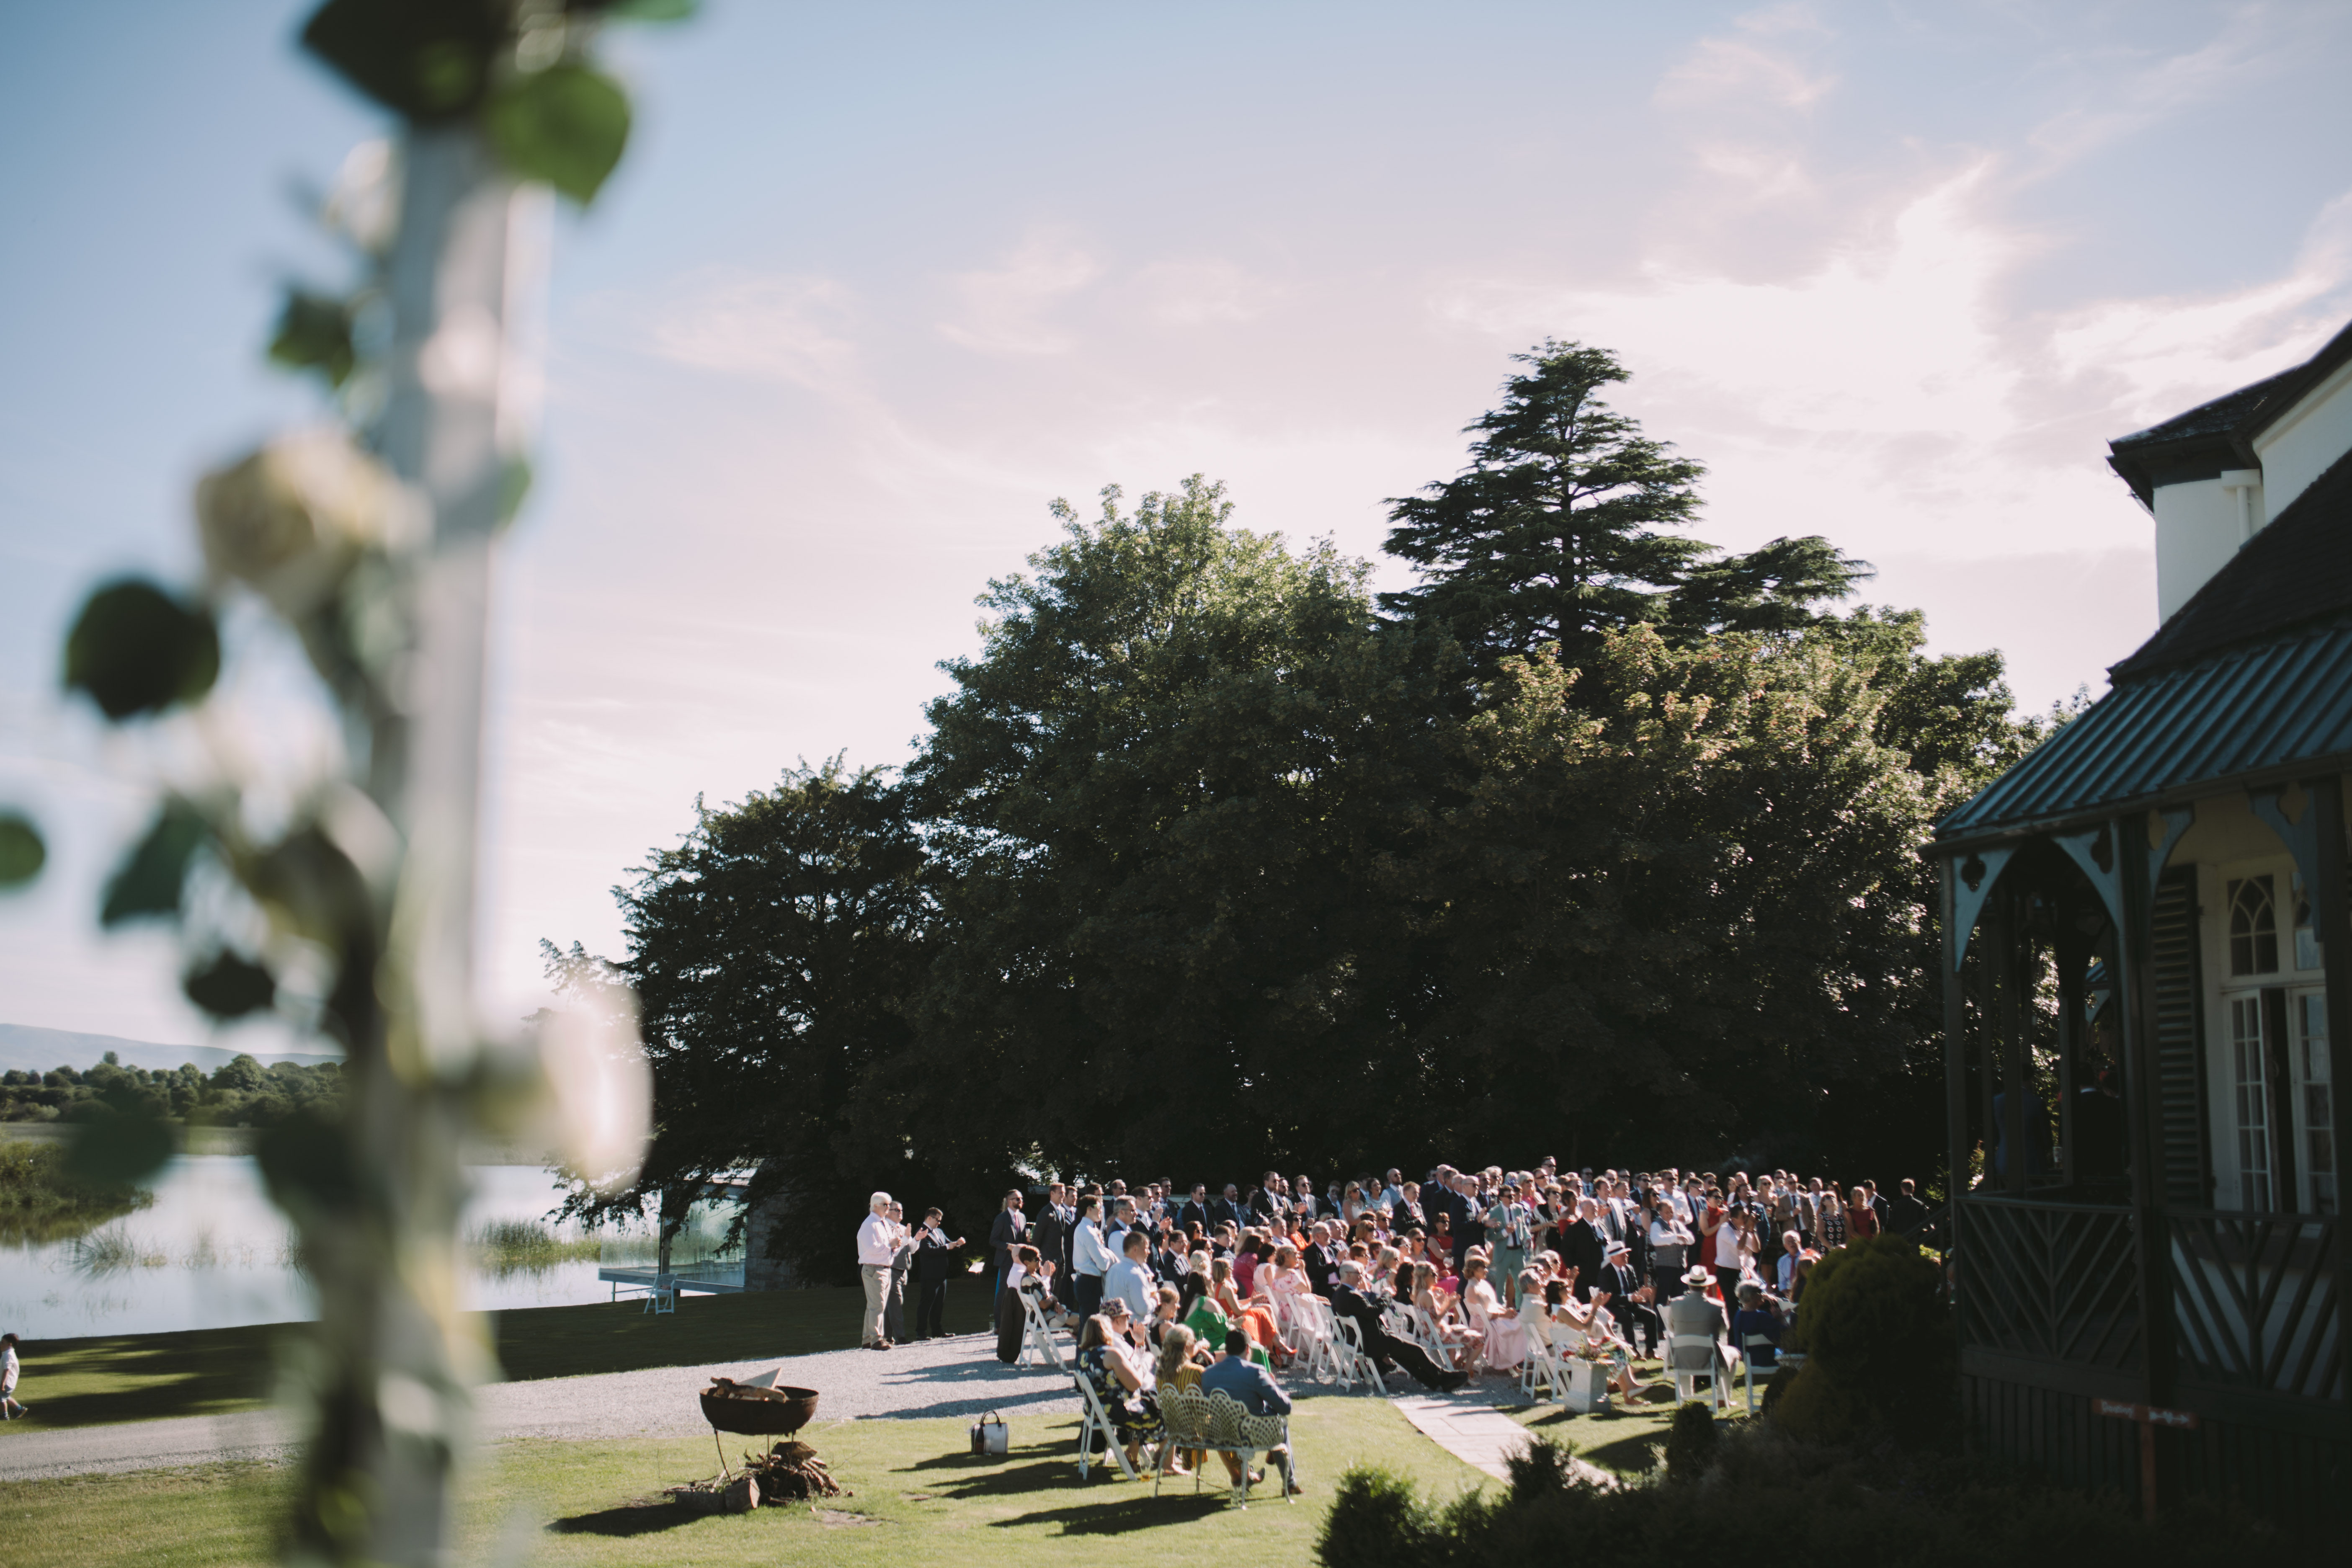 Wedding guests on lawn speeches on the lawn country house wedding Nenagh Tipperary Ireland